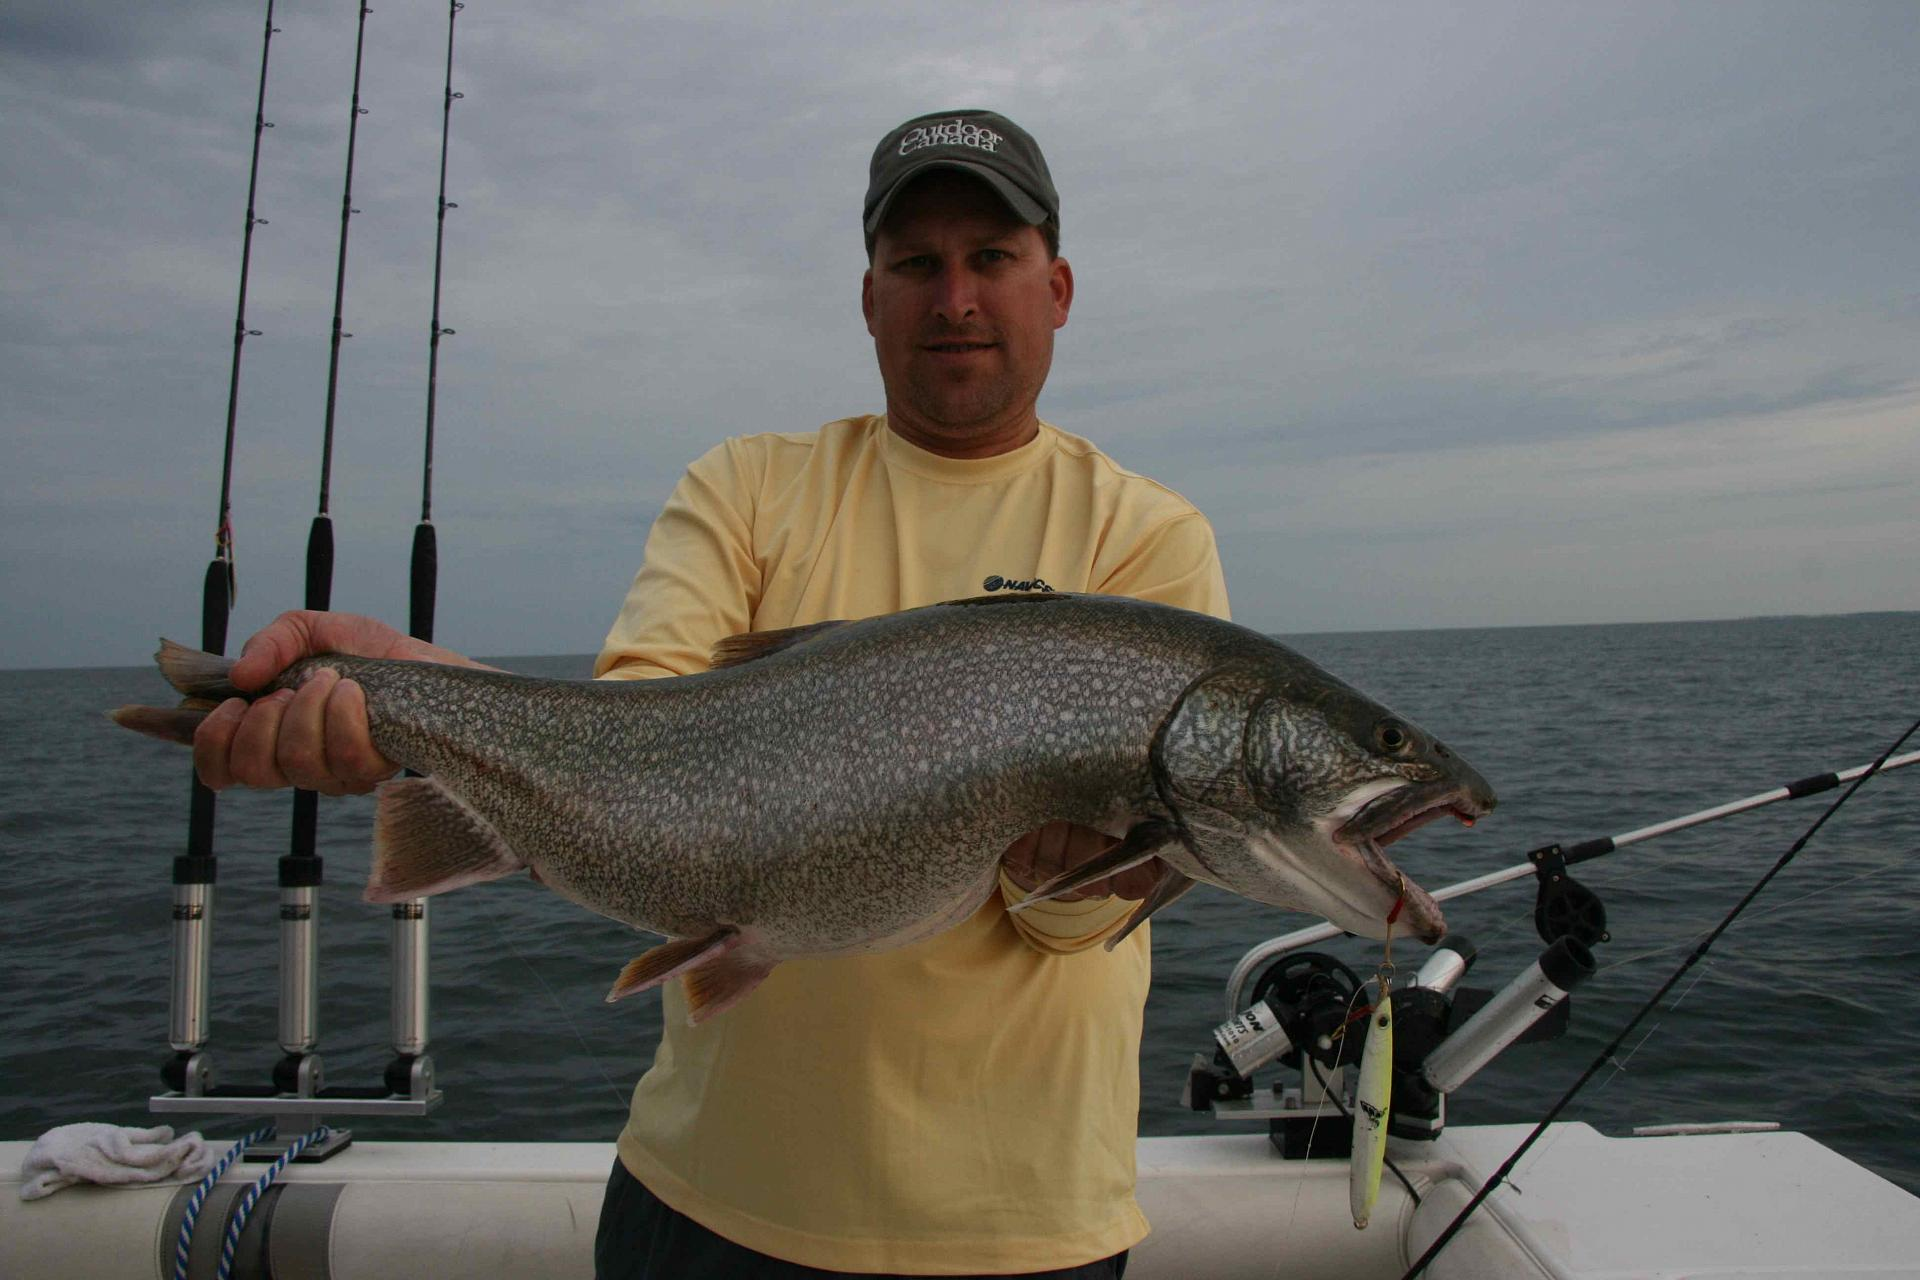 The jig is up: Navionics' Chris Gatley and a 15-pound lake trout that fell for his Shimano Butterfly jig in 140 feet of water